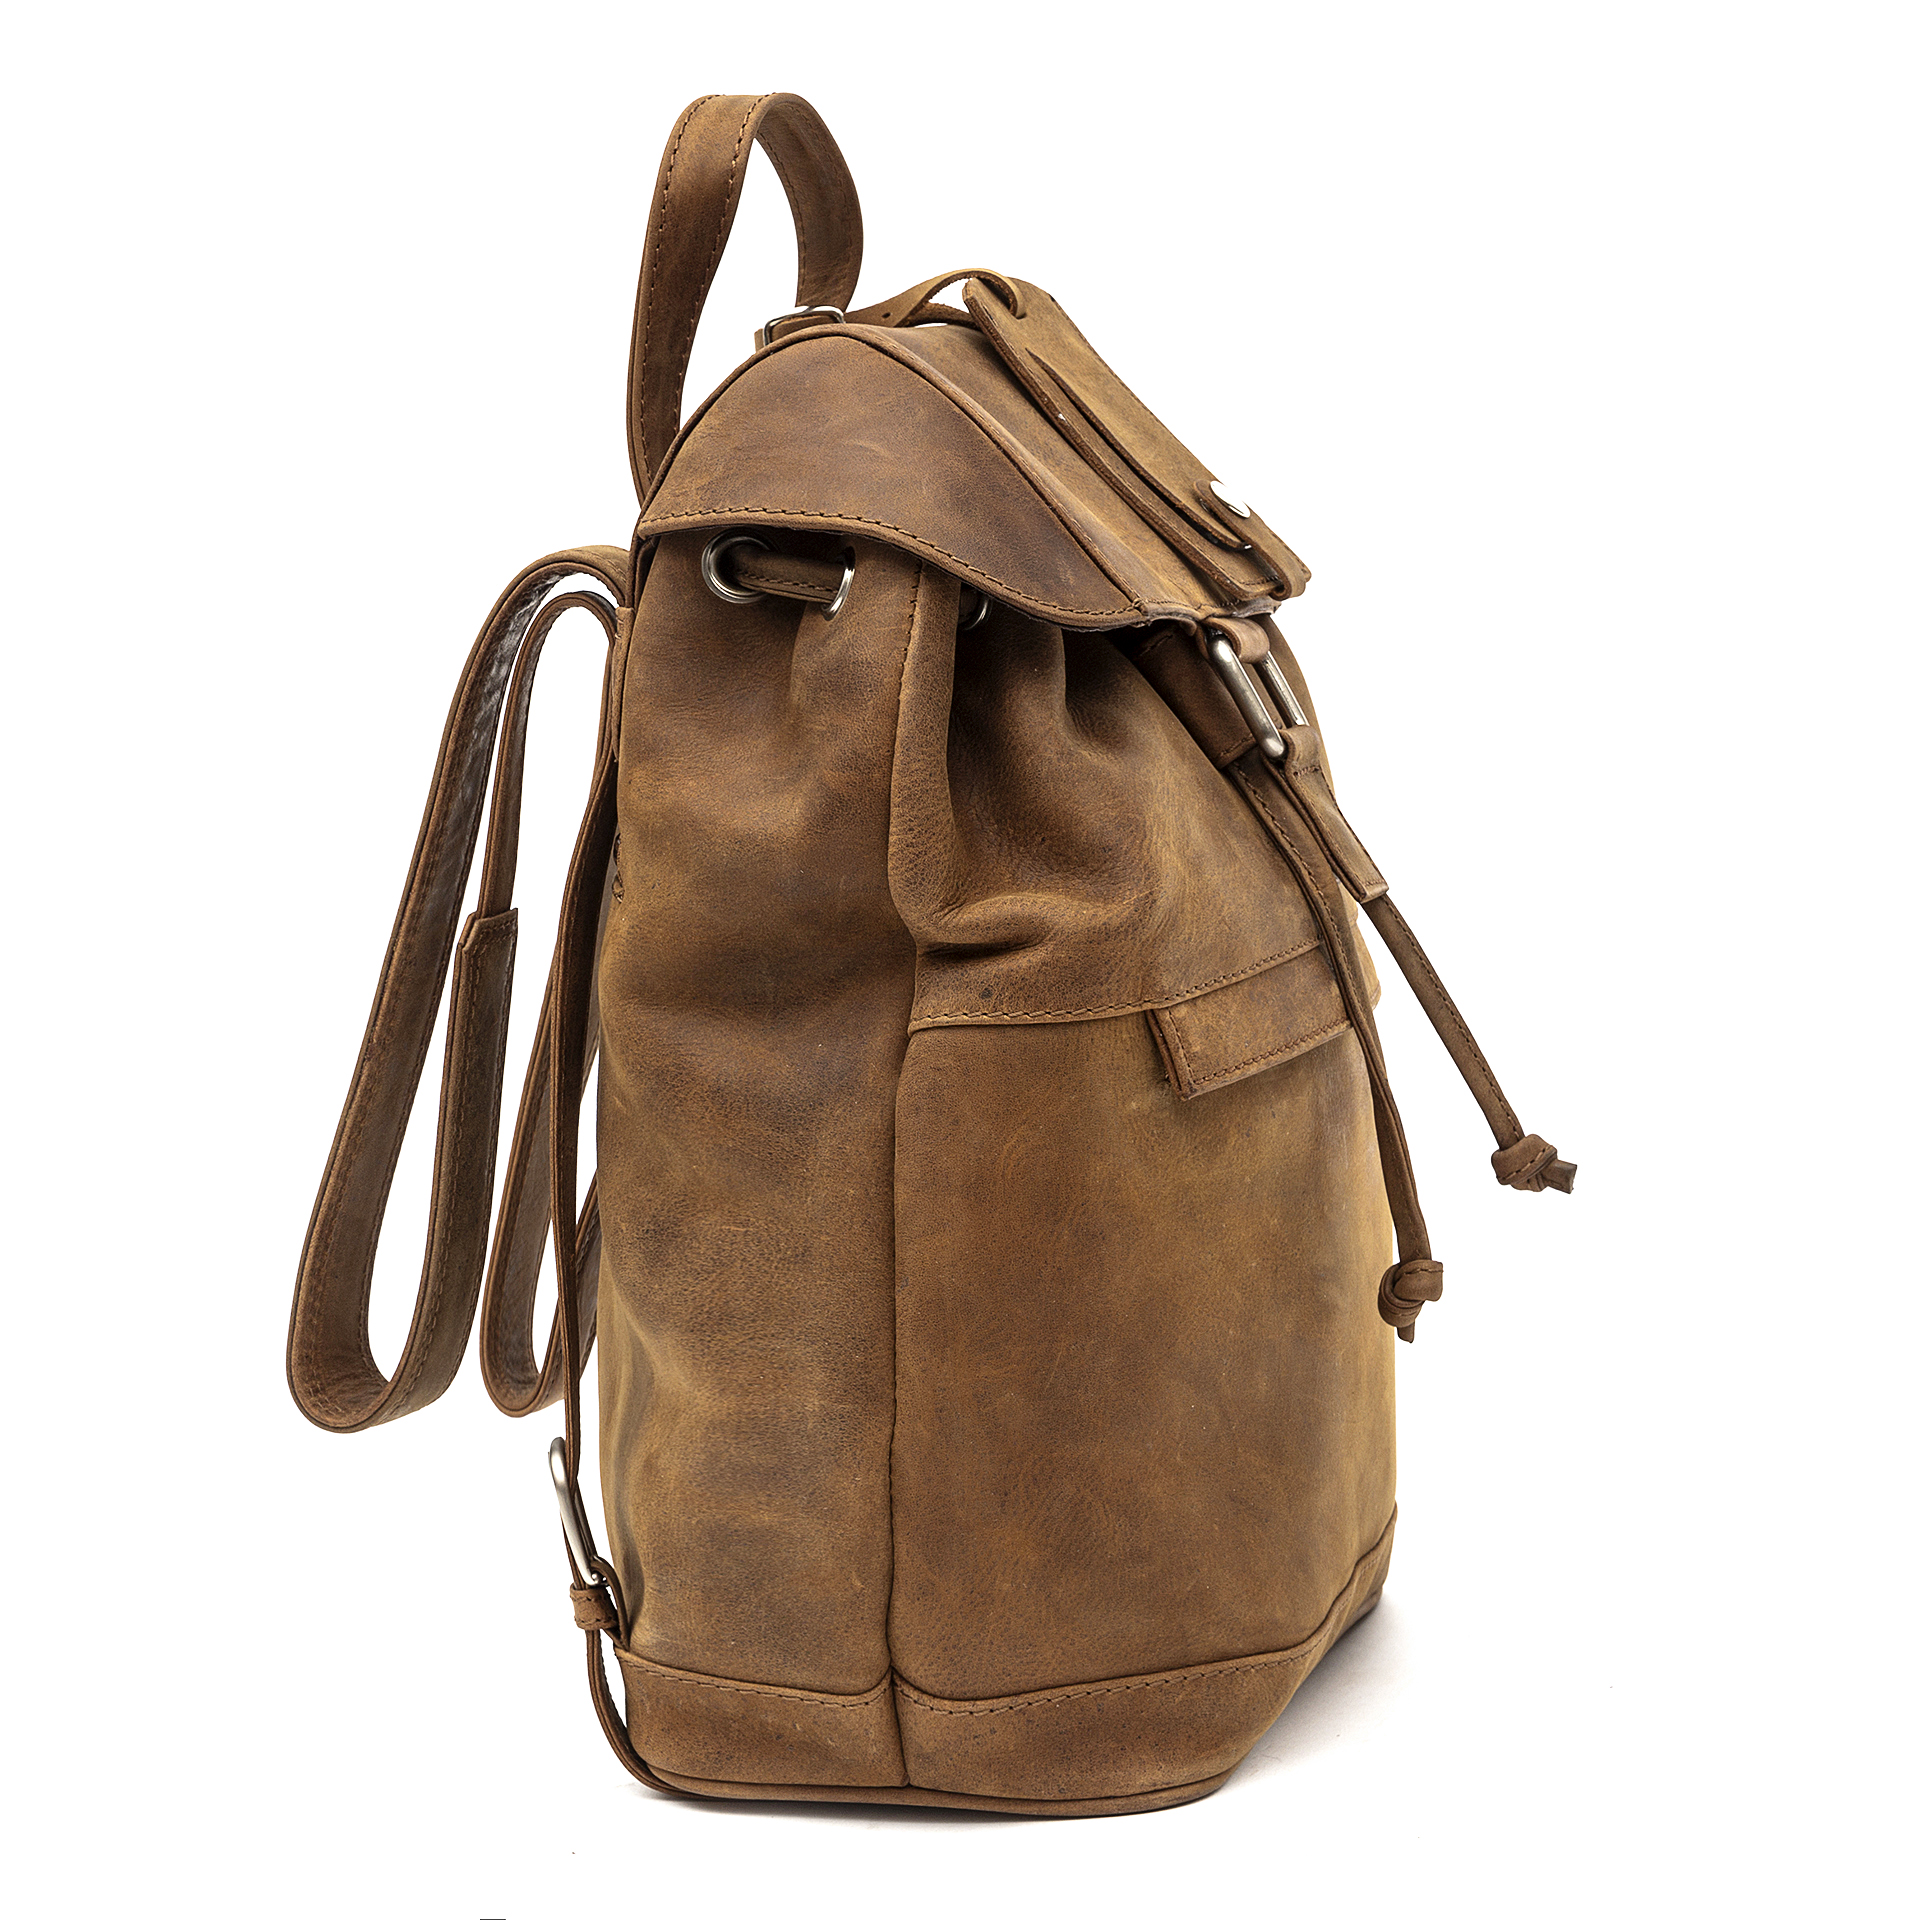 7e534ce78b38ac leather backpack by Porterbello's Sorrento rucksack tan vintage